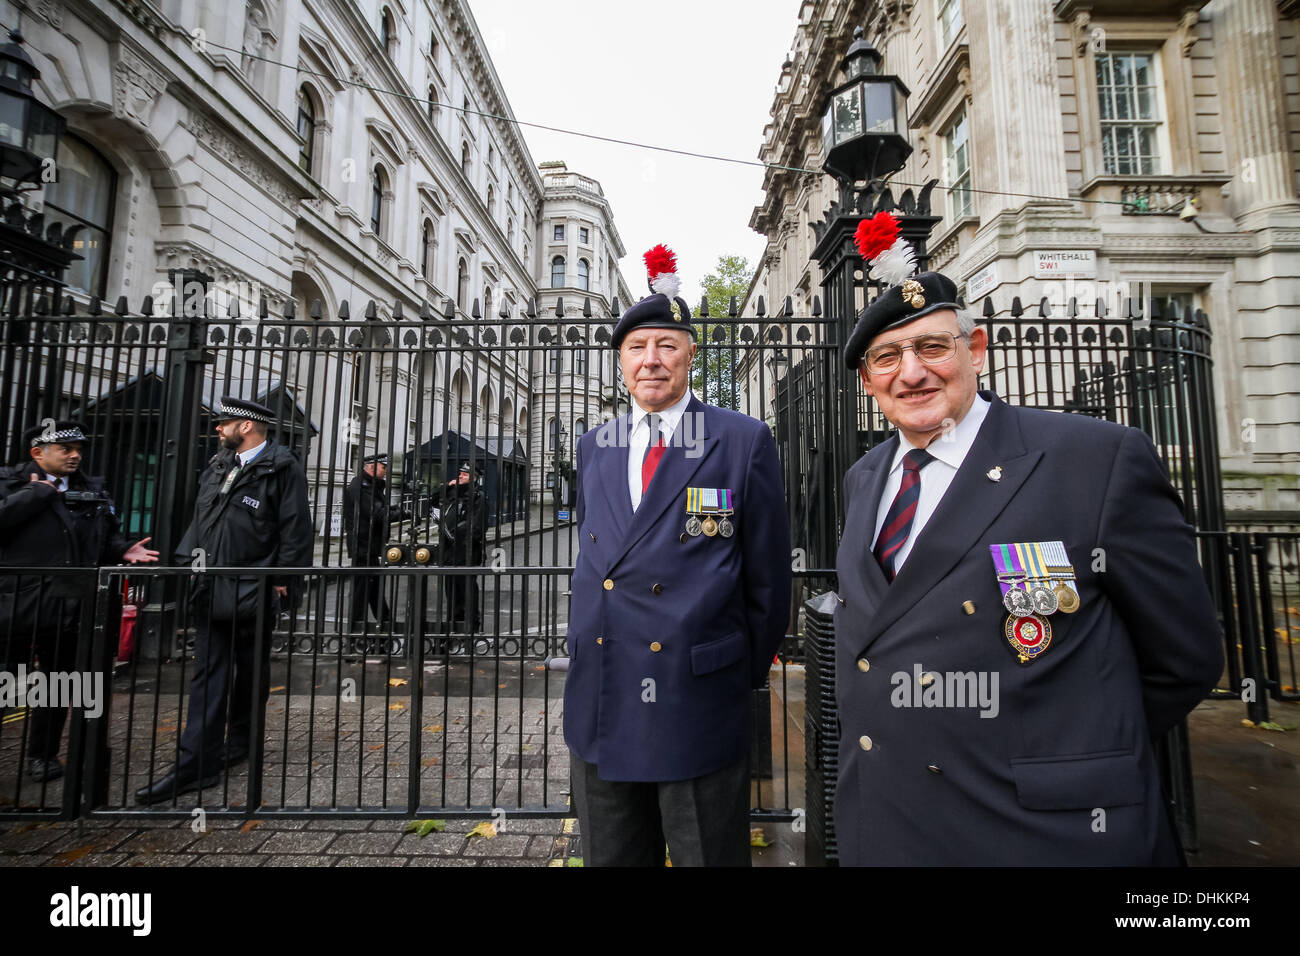 London, UK. 12th November 2013. Royal Fusiliers Protest outside Downing Street in London Credit:  Guy Corbishley/Alamy Live News - Stock Image